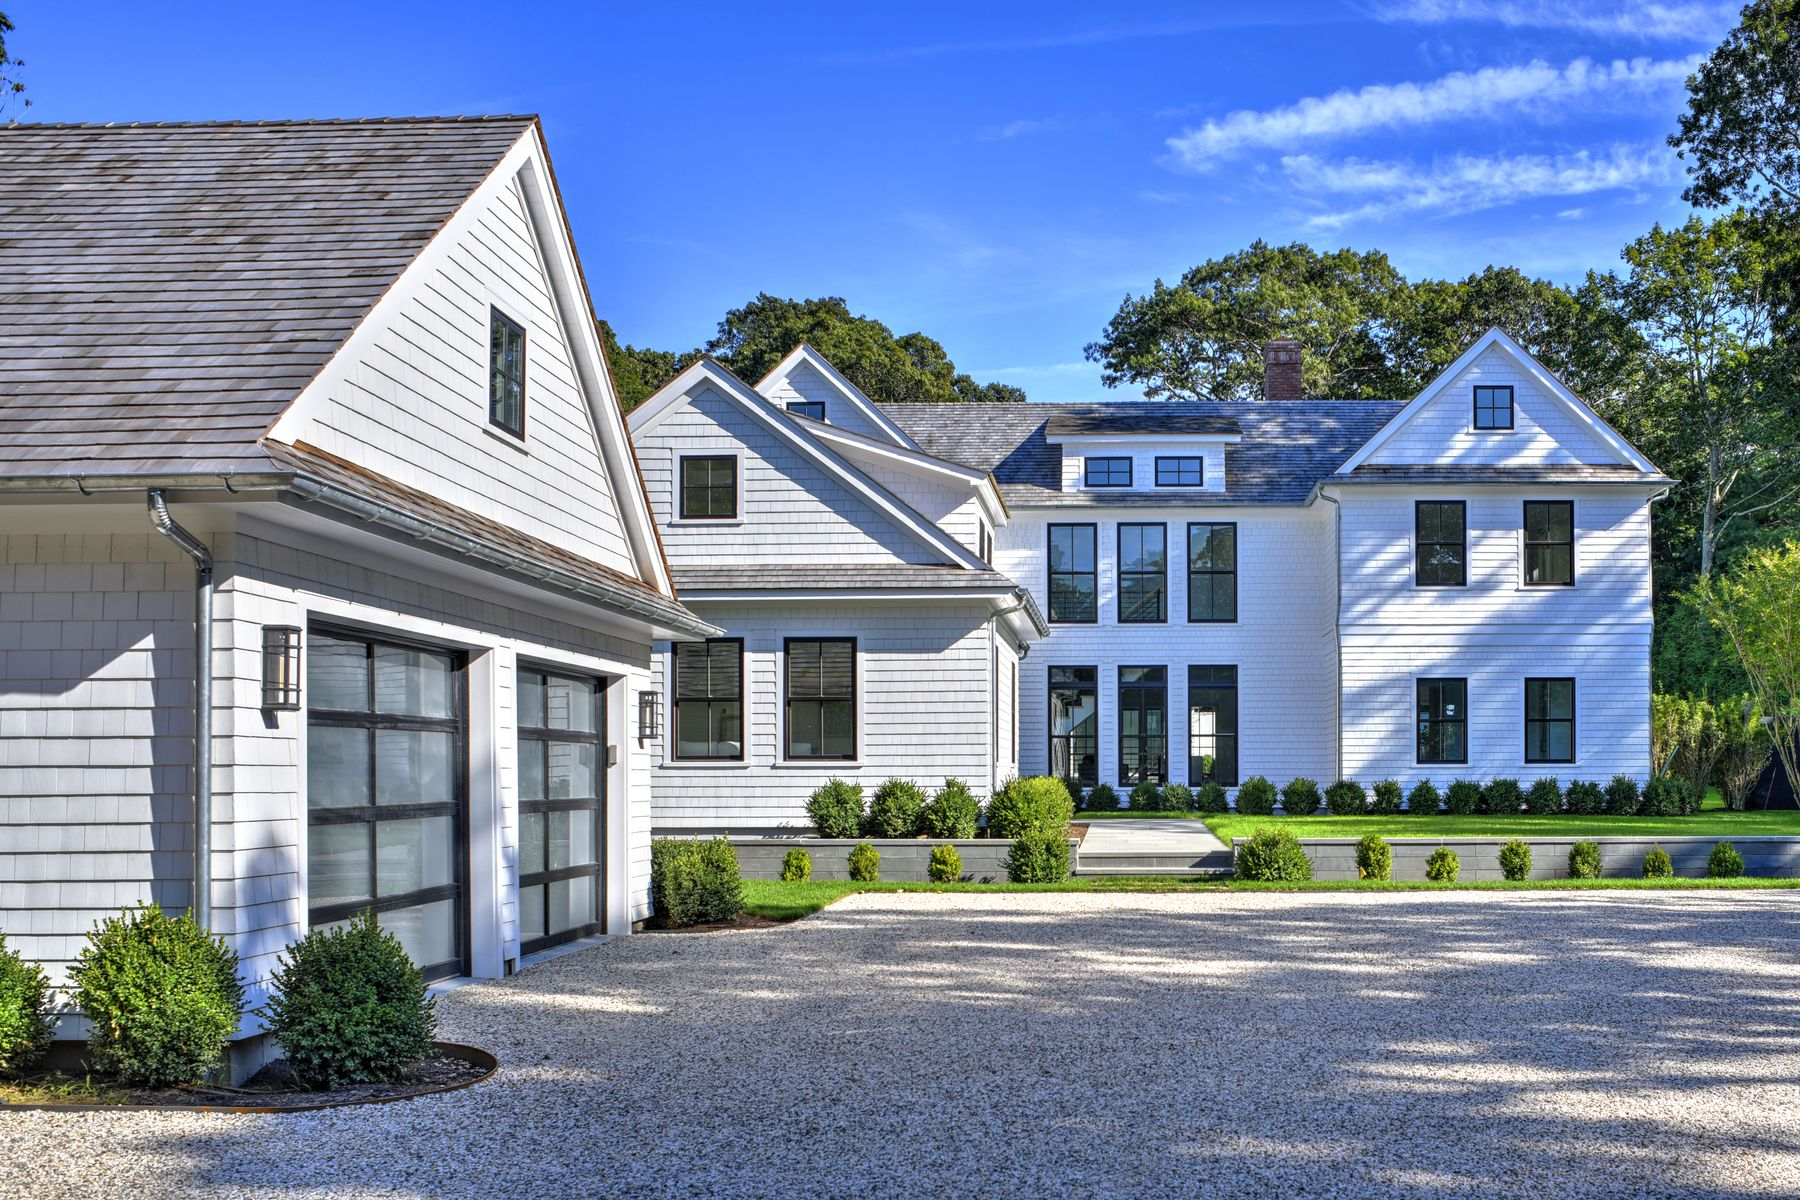 Single Family Home for Active at EAST HAMPTON SOUTH MODERN BEACH HOUSE 142 Cove Hollow Road East Hampton, New York 11937 United States